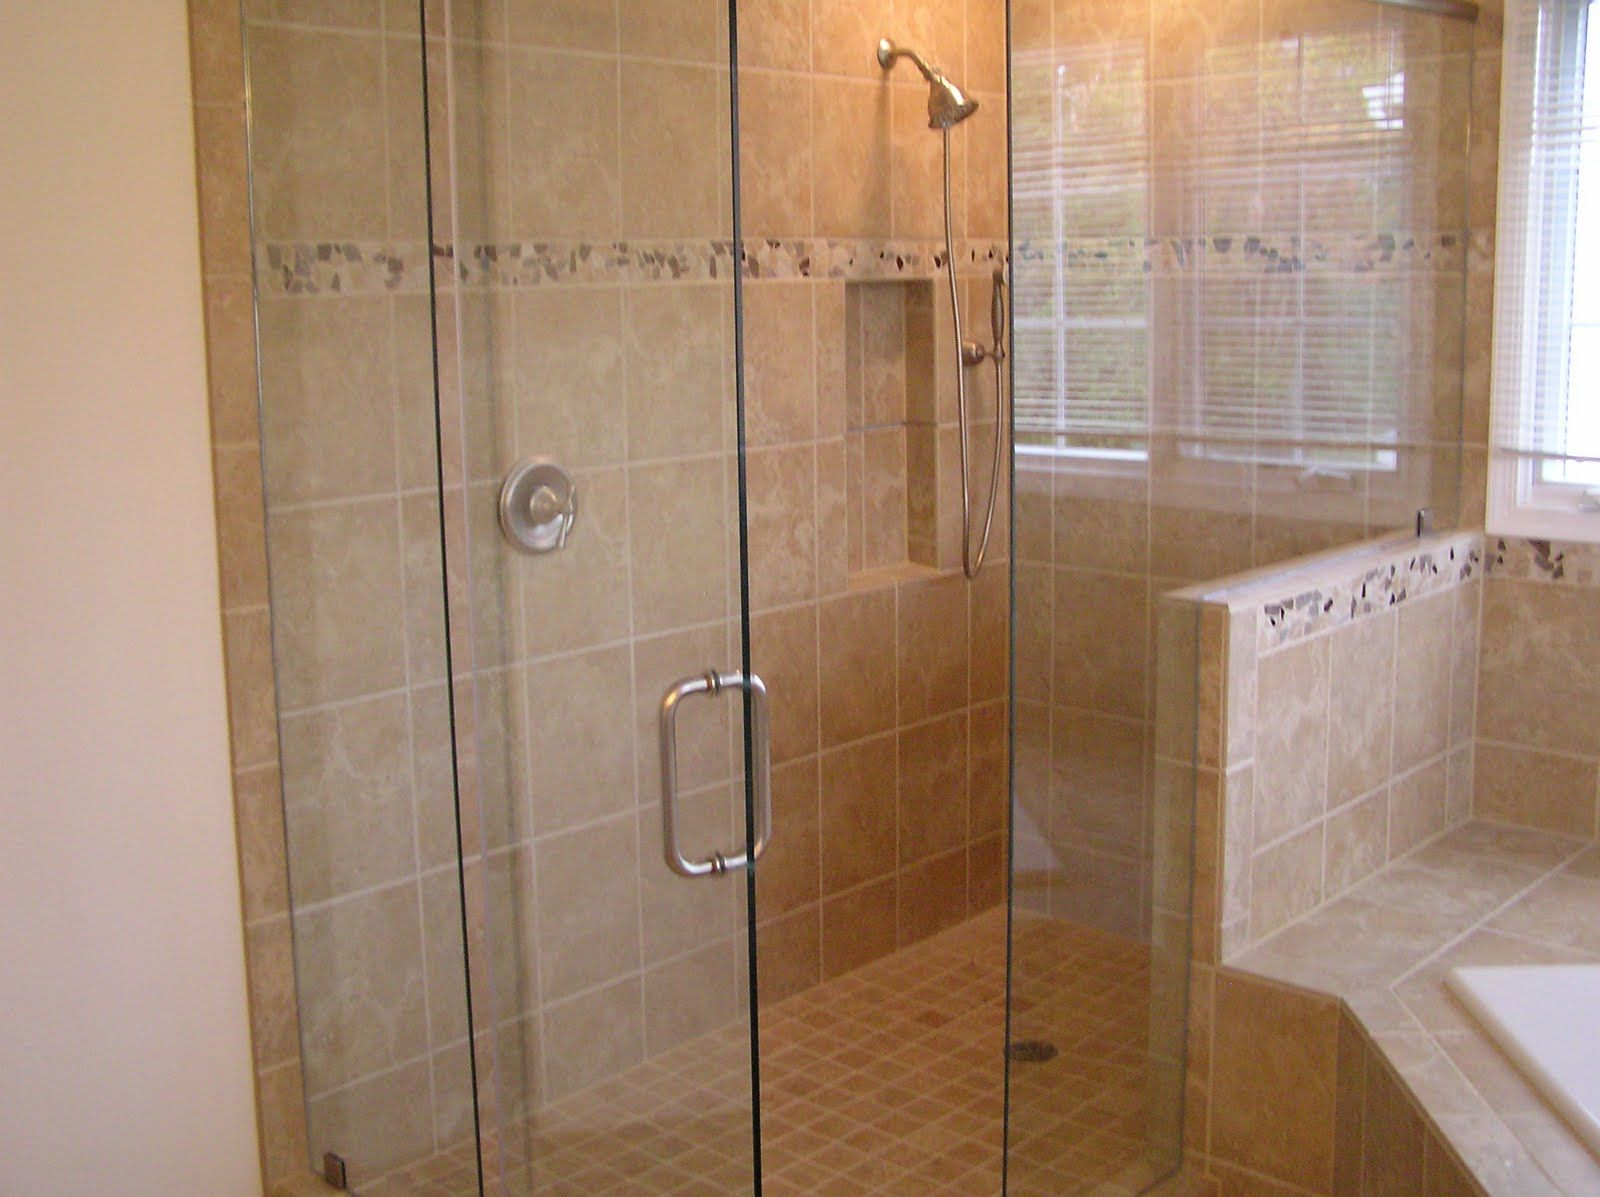 bathroom tile designs ideas bathroom shower - Design Bathroom Tile